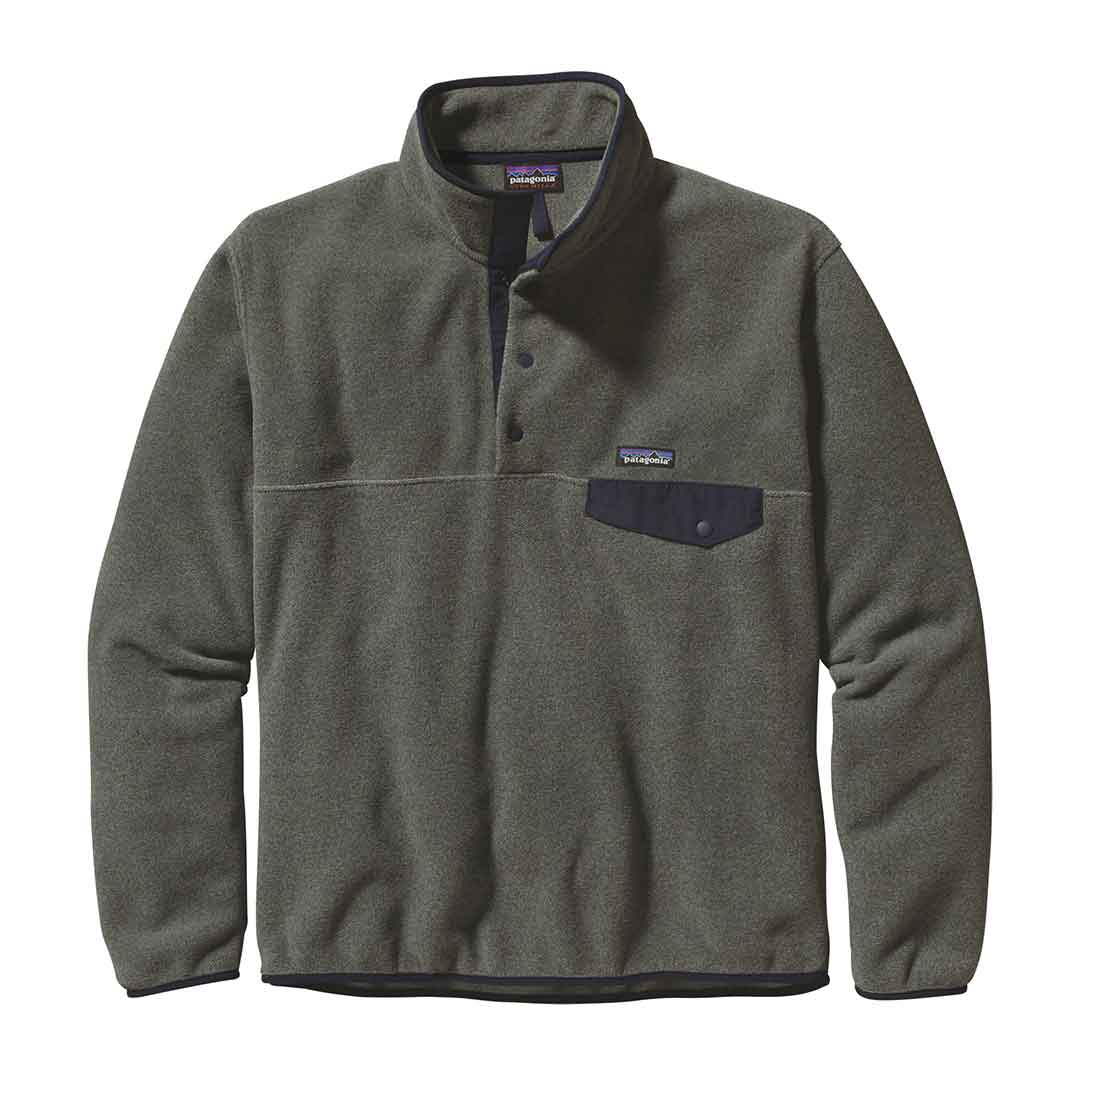 Patagonia Synchilla Snap-T - Nickel w/ Navy Blue